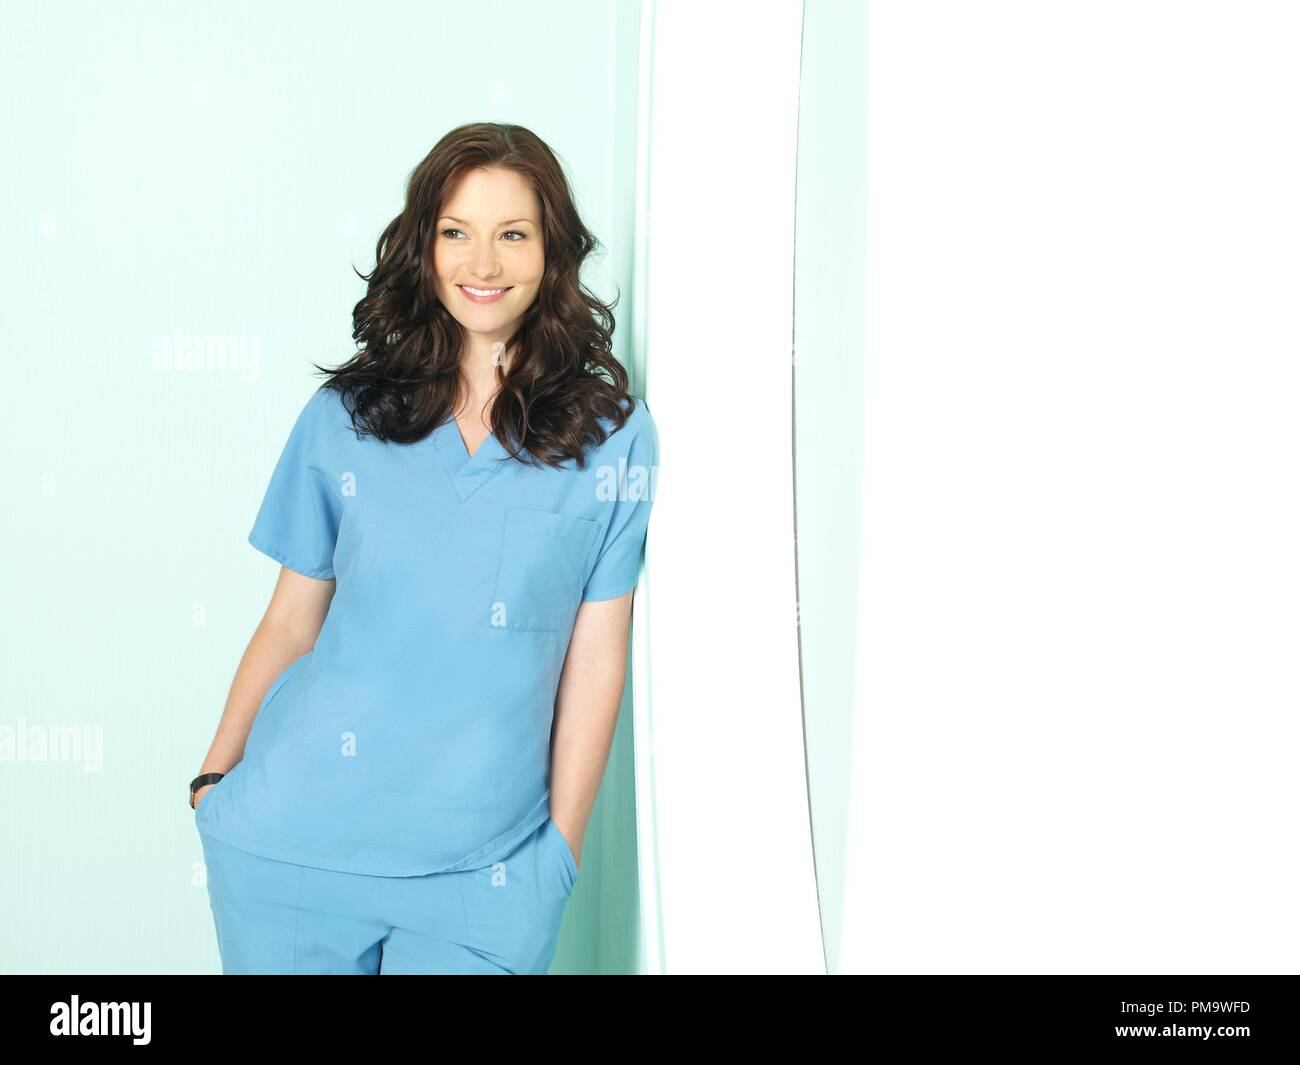 Discussion on this topic: Paging Lexi Grey: Greys Anatomys Chyler Leigh, paging-lexi-grey-greys-anatomys-chyler-leigh/